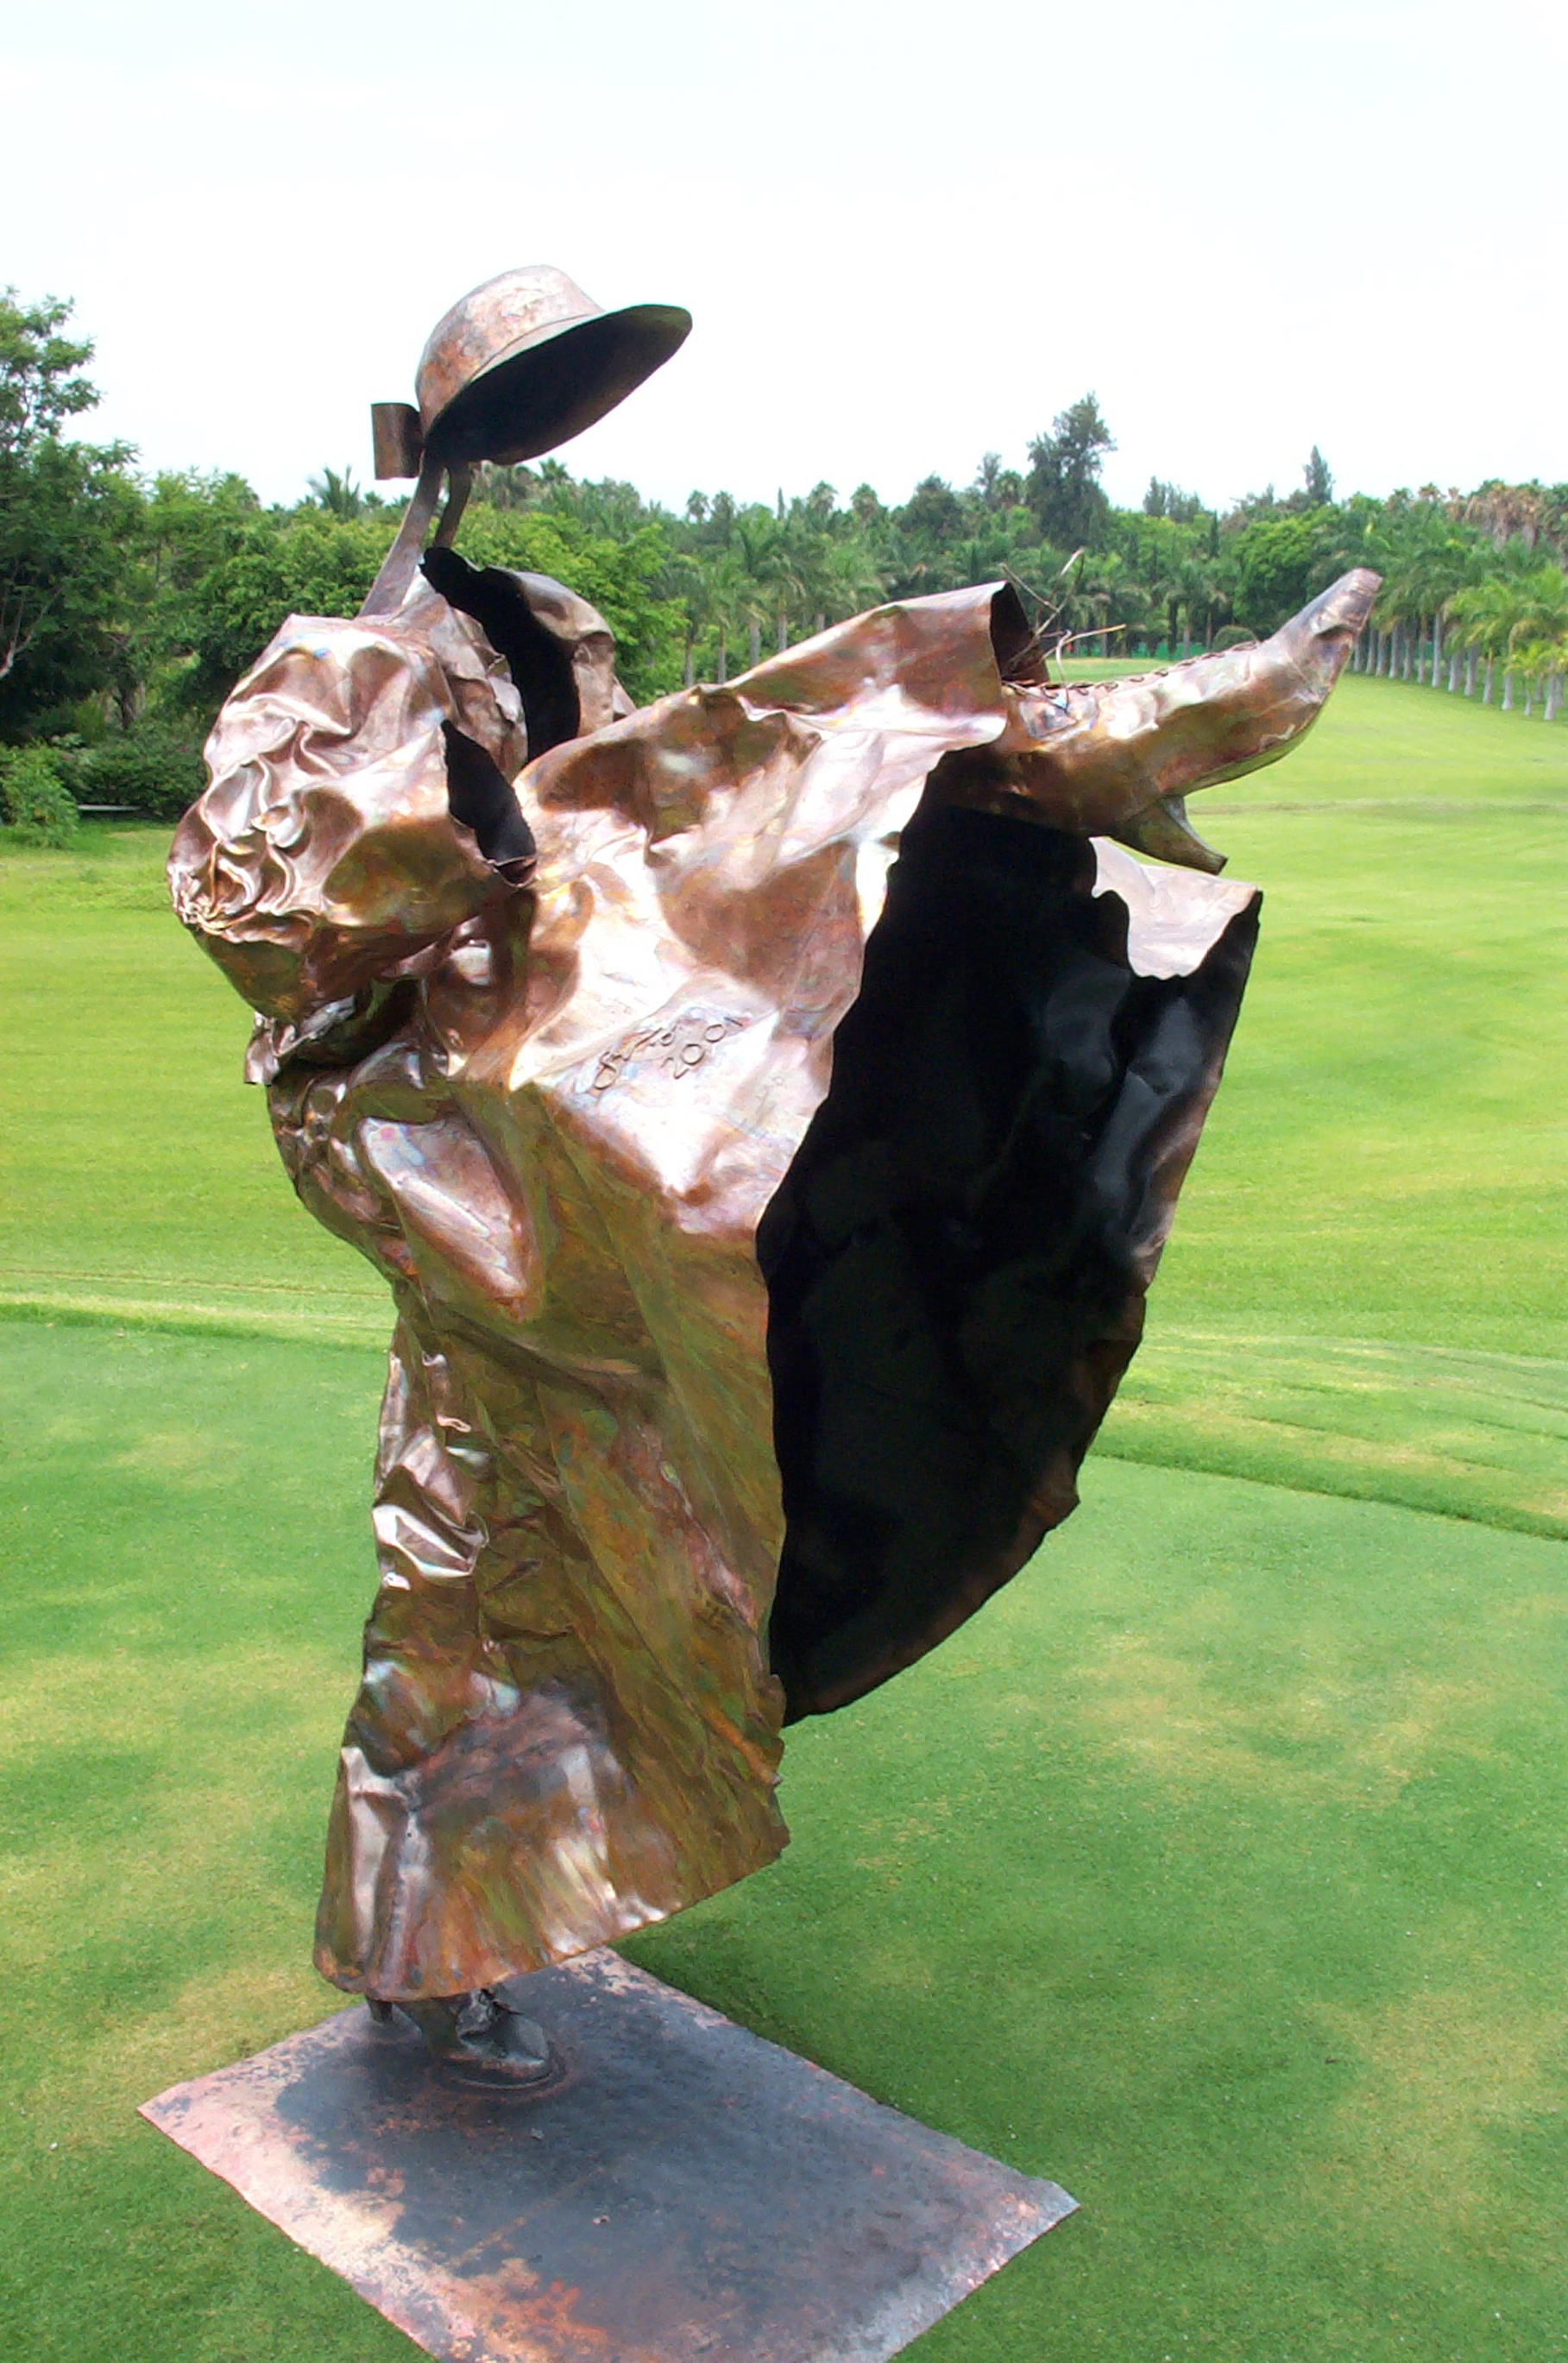 Dancer without panties 79 x 49 x 43 in Copper sheet welding & embossing